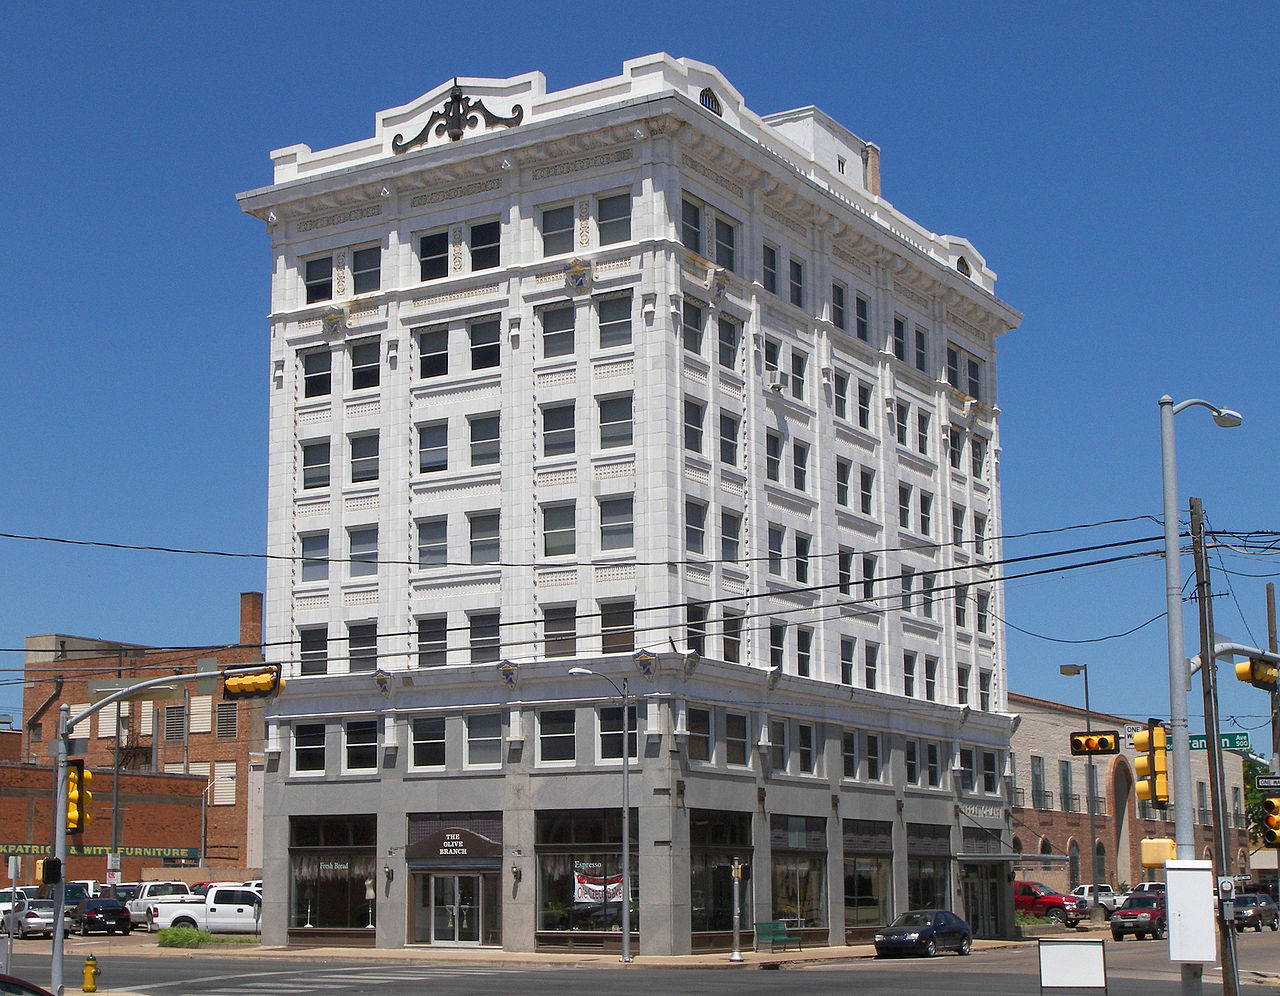 The Praetorian Building is a fine example of the Chicago style of architecture and remains an important Waco landmark.